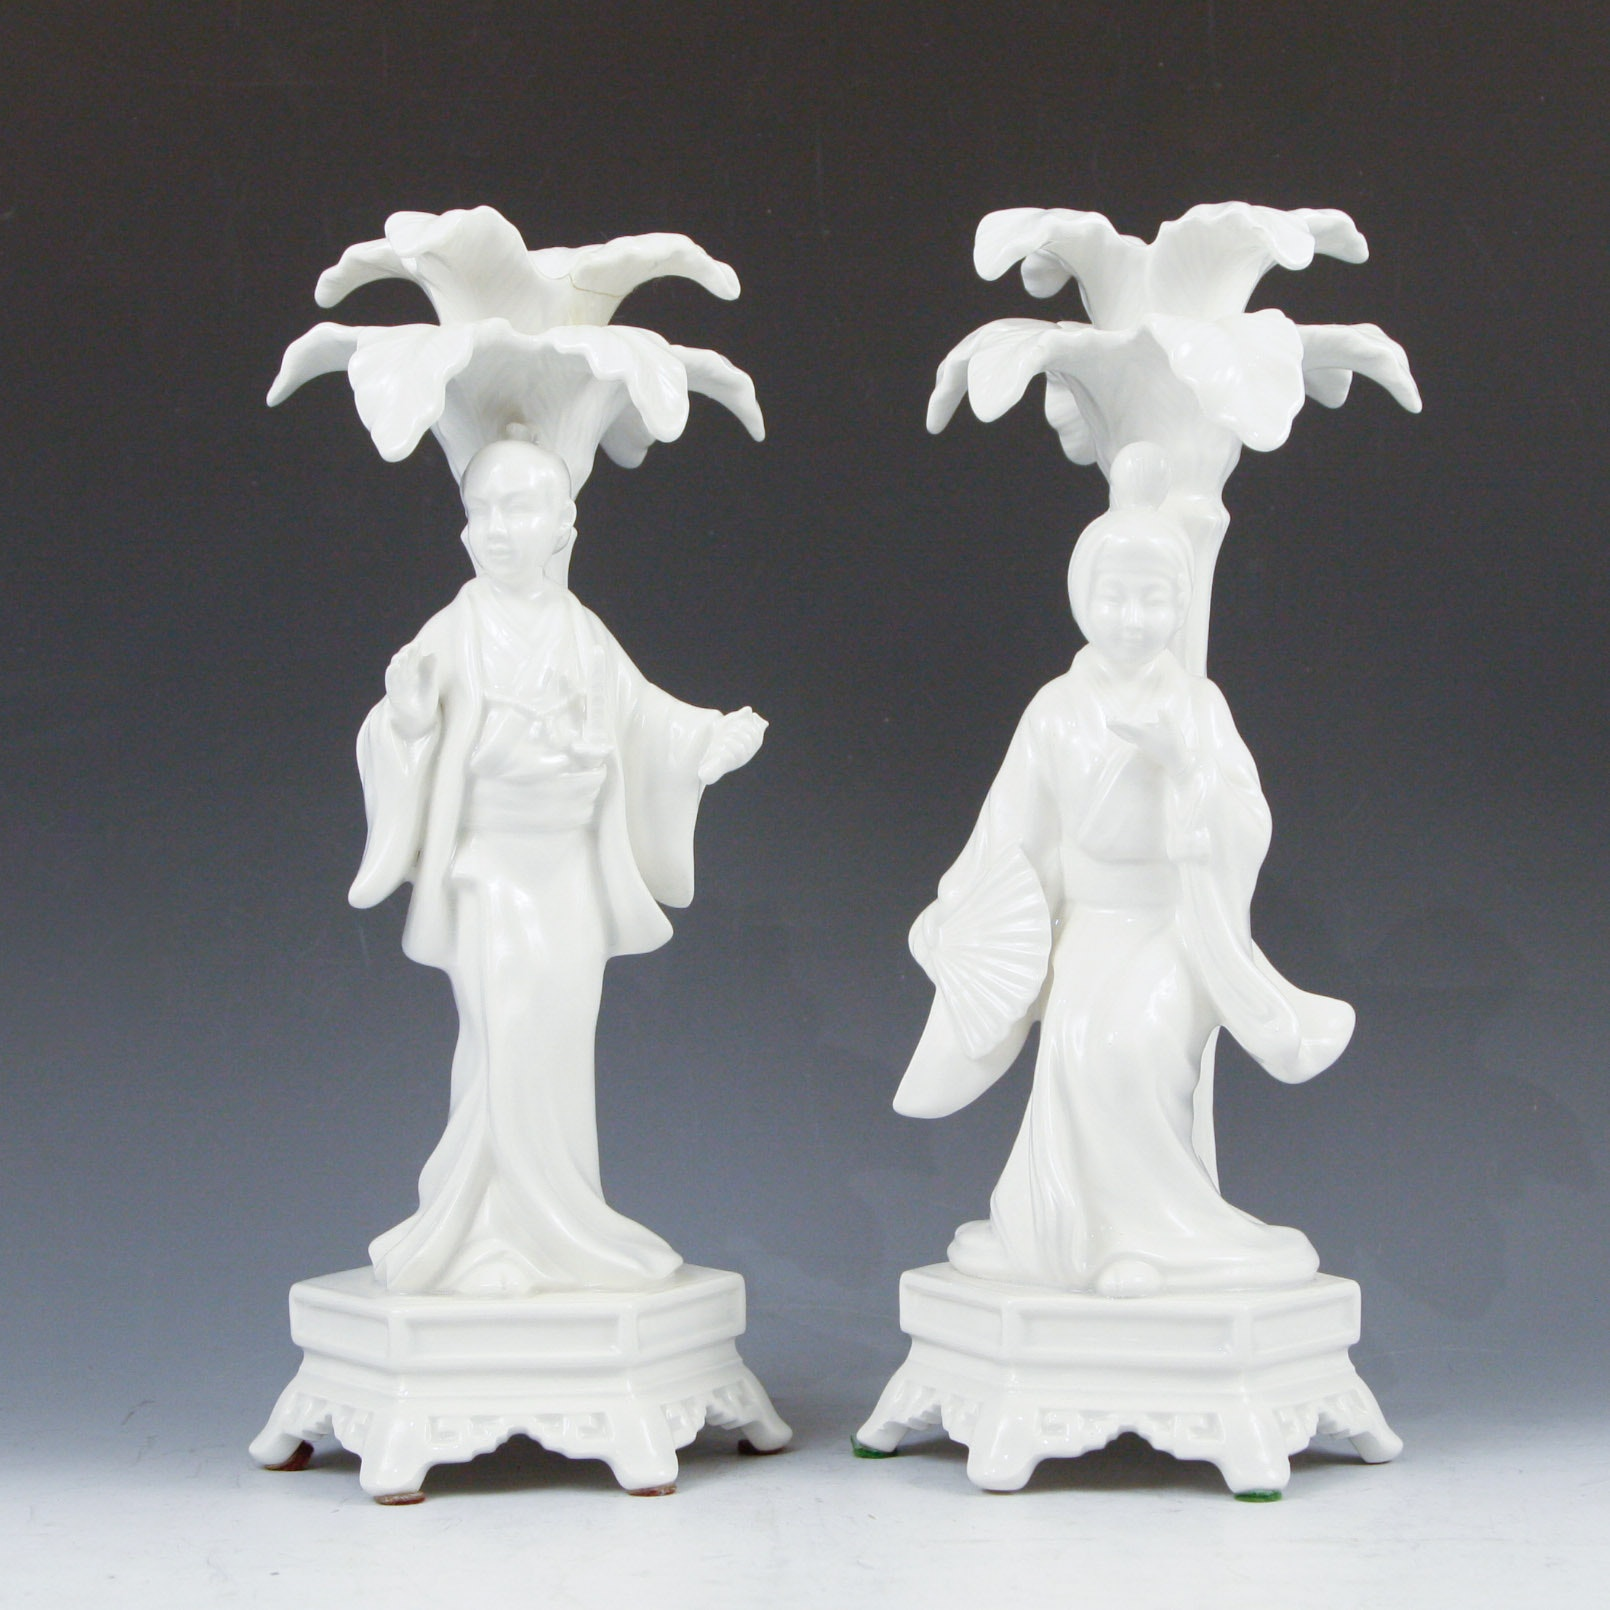 Fitz and Floyd White Porcelain Figural Candlesticks